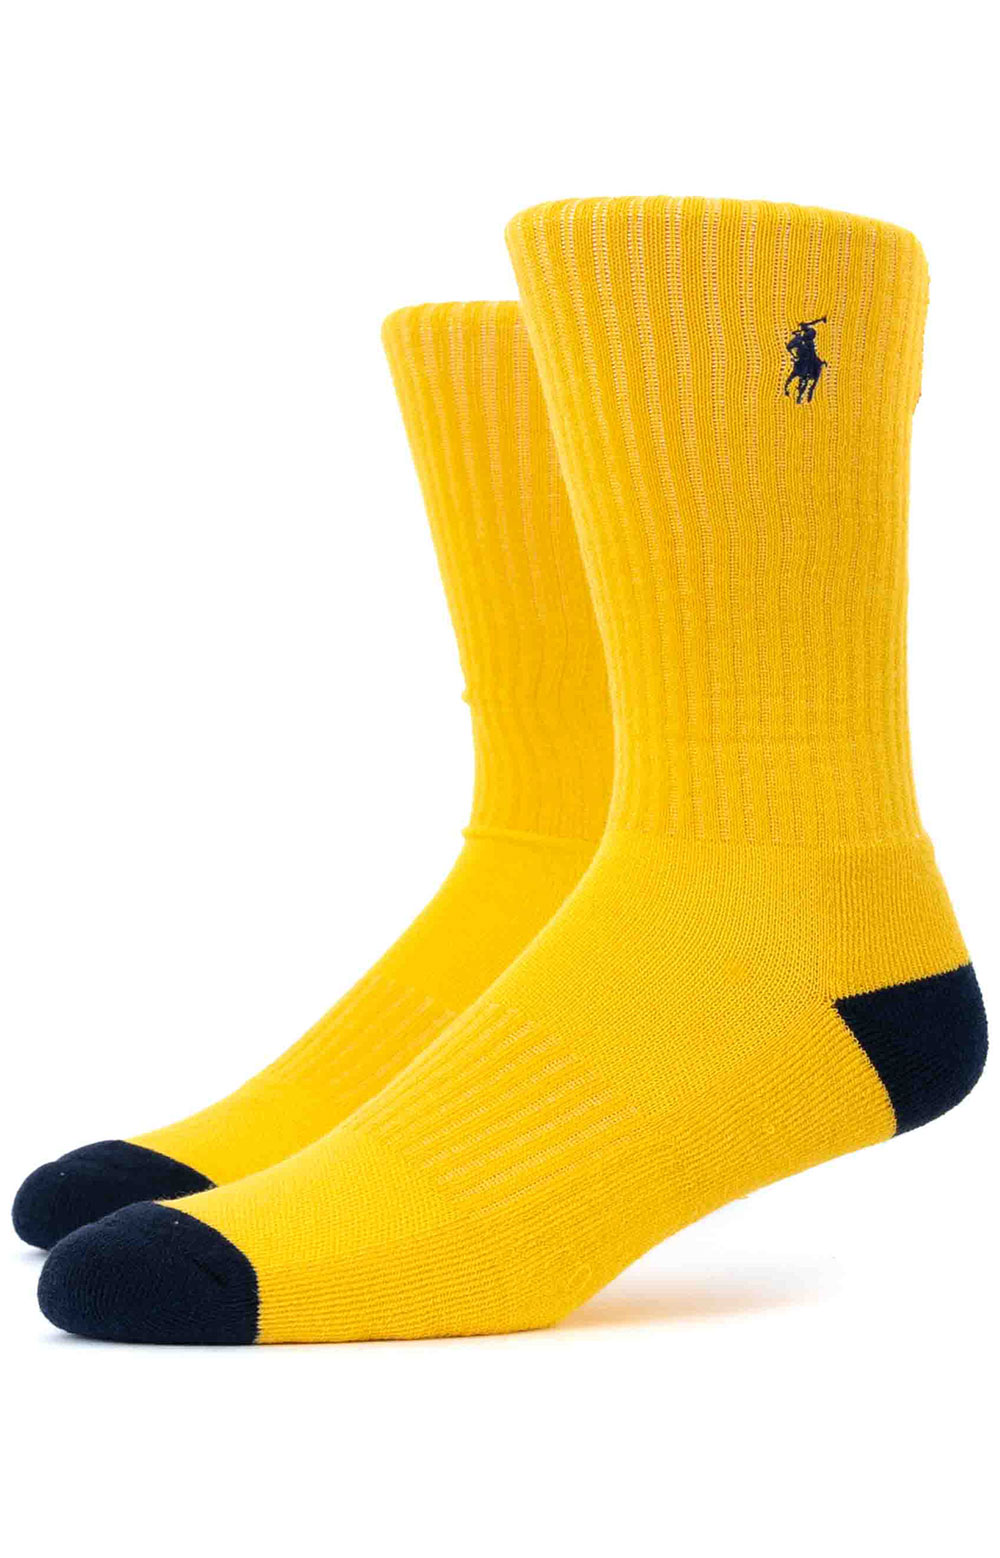 Colorblock Cushioned Crew Socks - 6 Pack 11